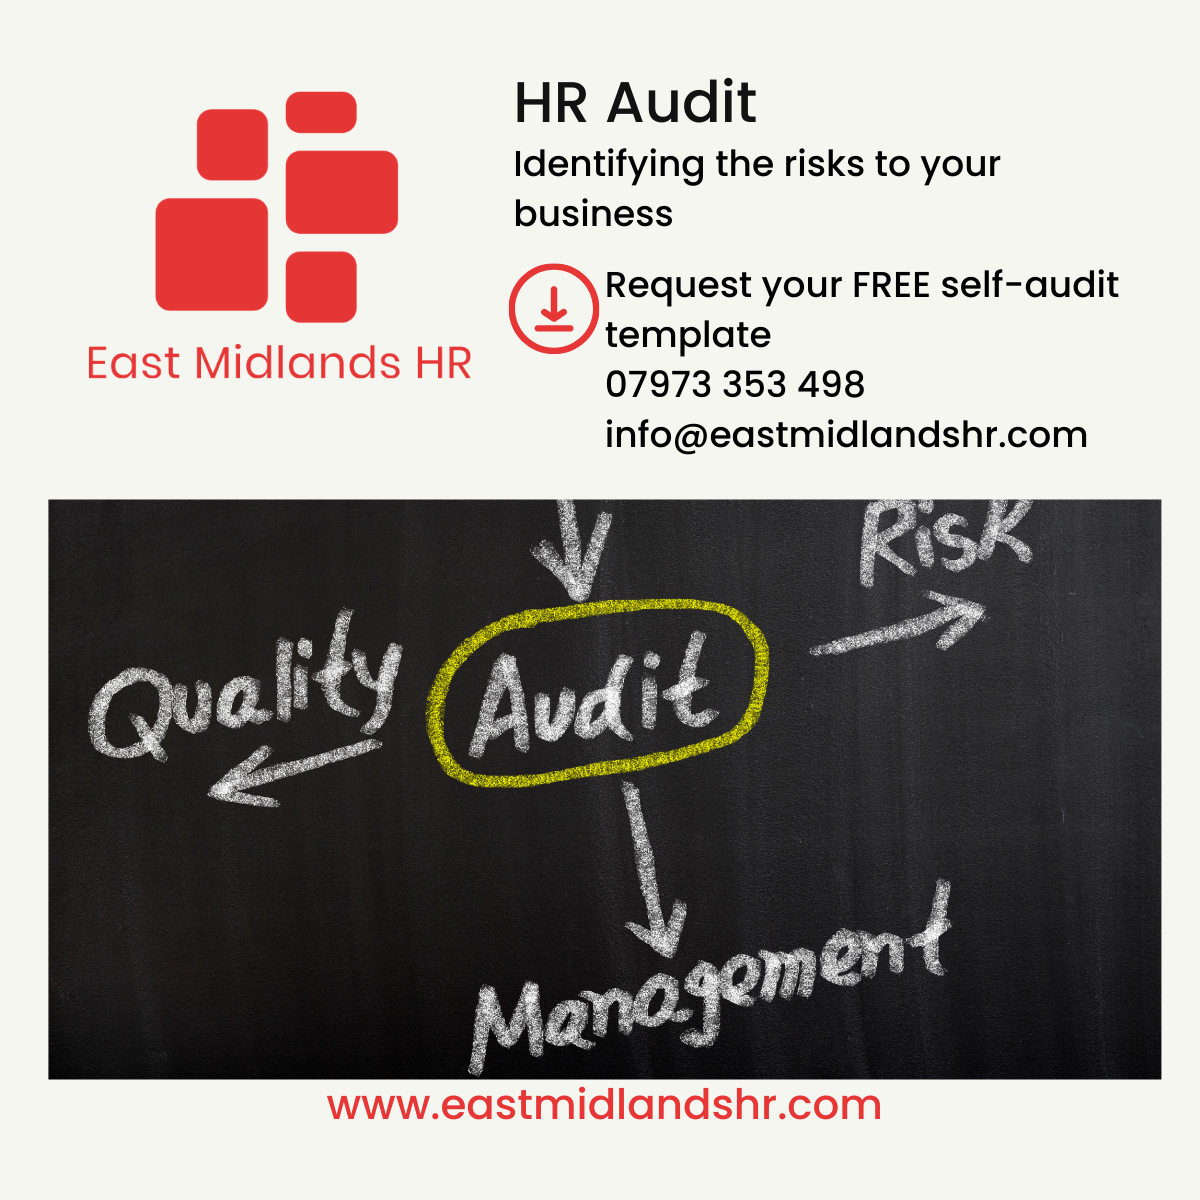 HR Audits - legally compliant and best practice HR